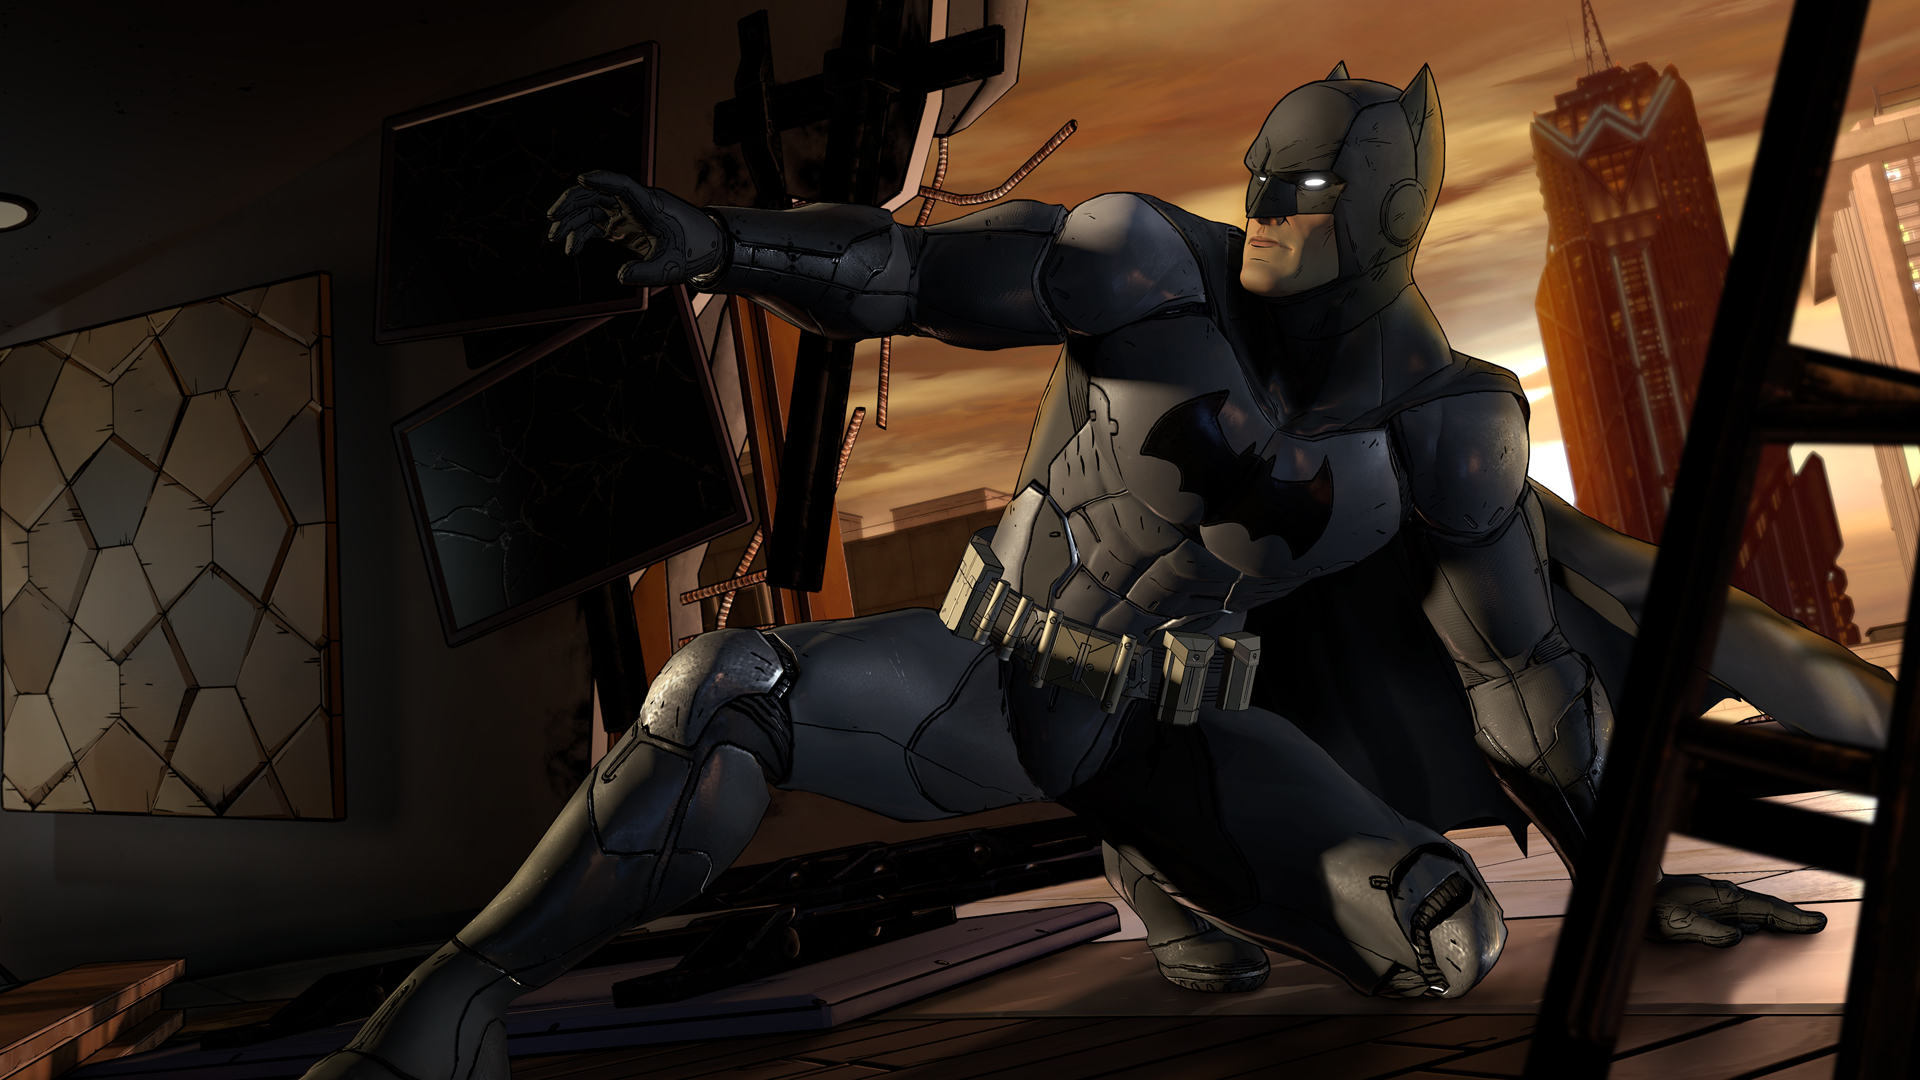 BATMAN_TT_102_Wall.jpg